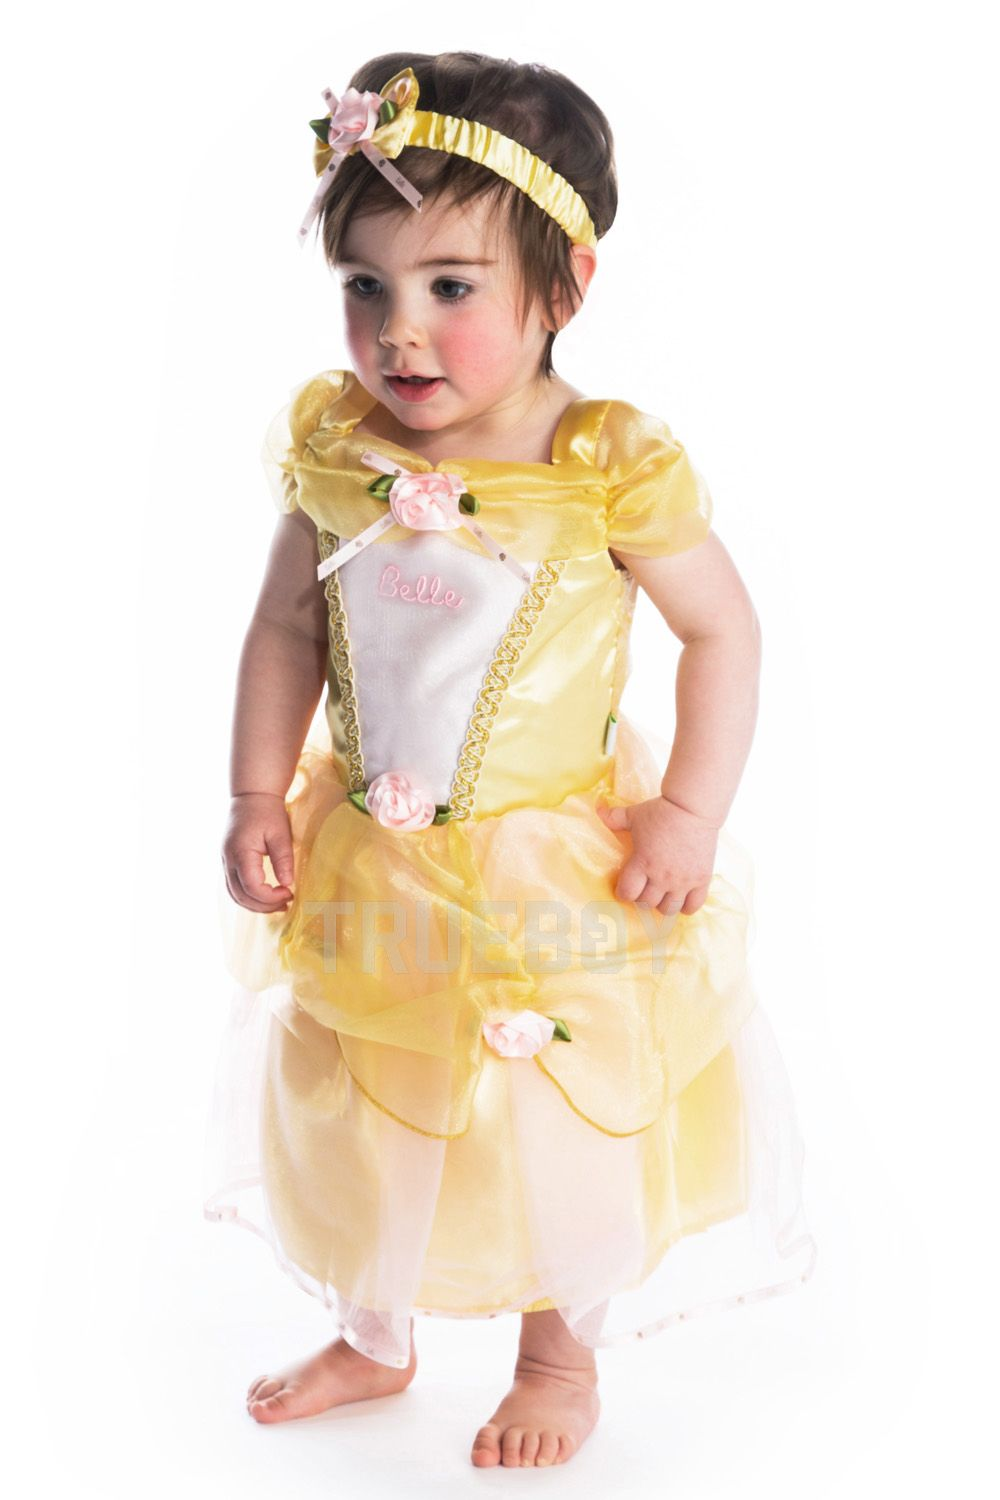 Tinker Bell Minnie Mouse Fancy Dress Costume Baby Girl Disney Princess Belle